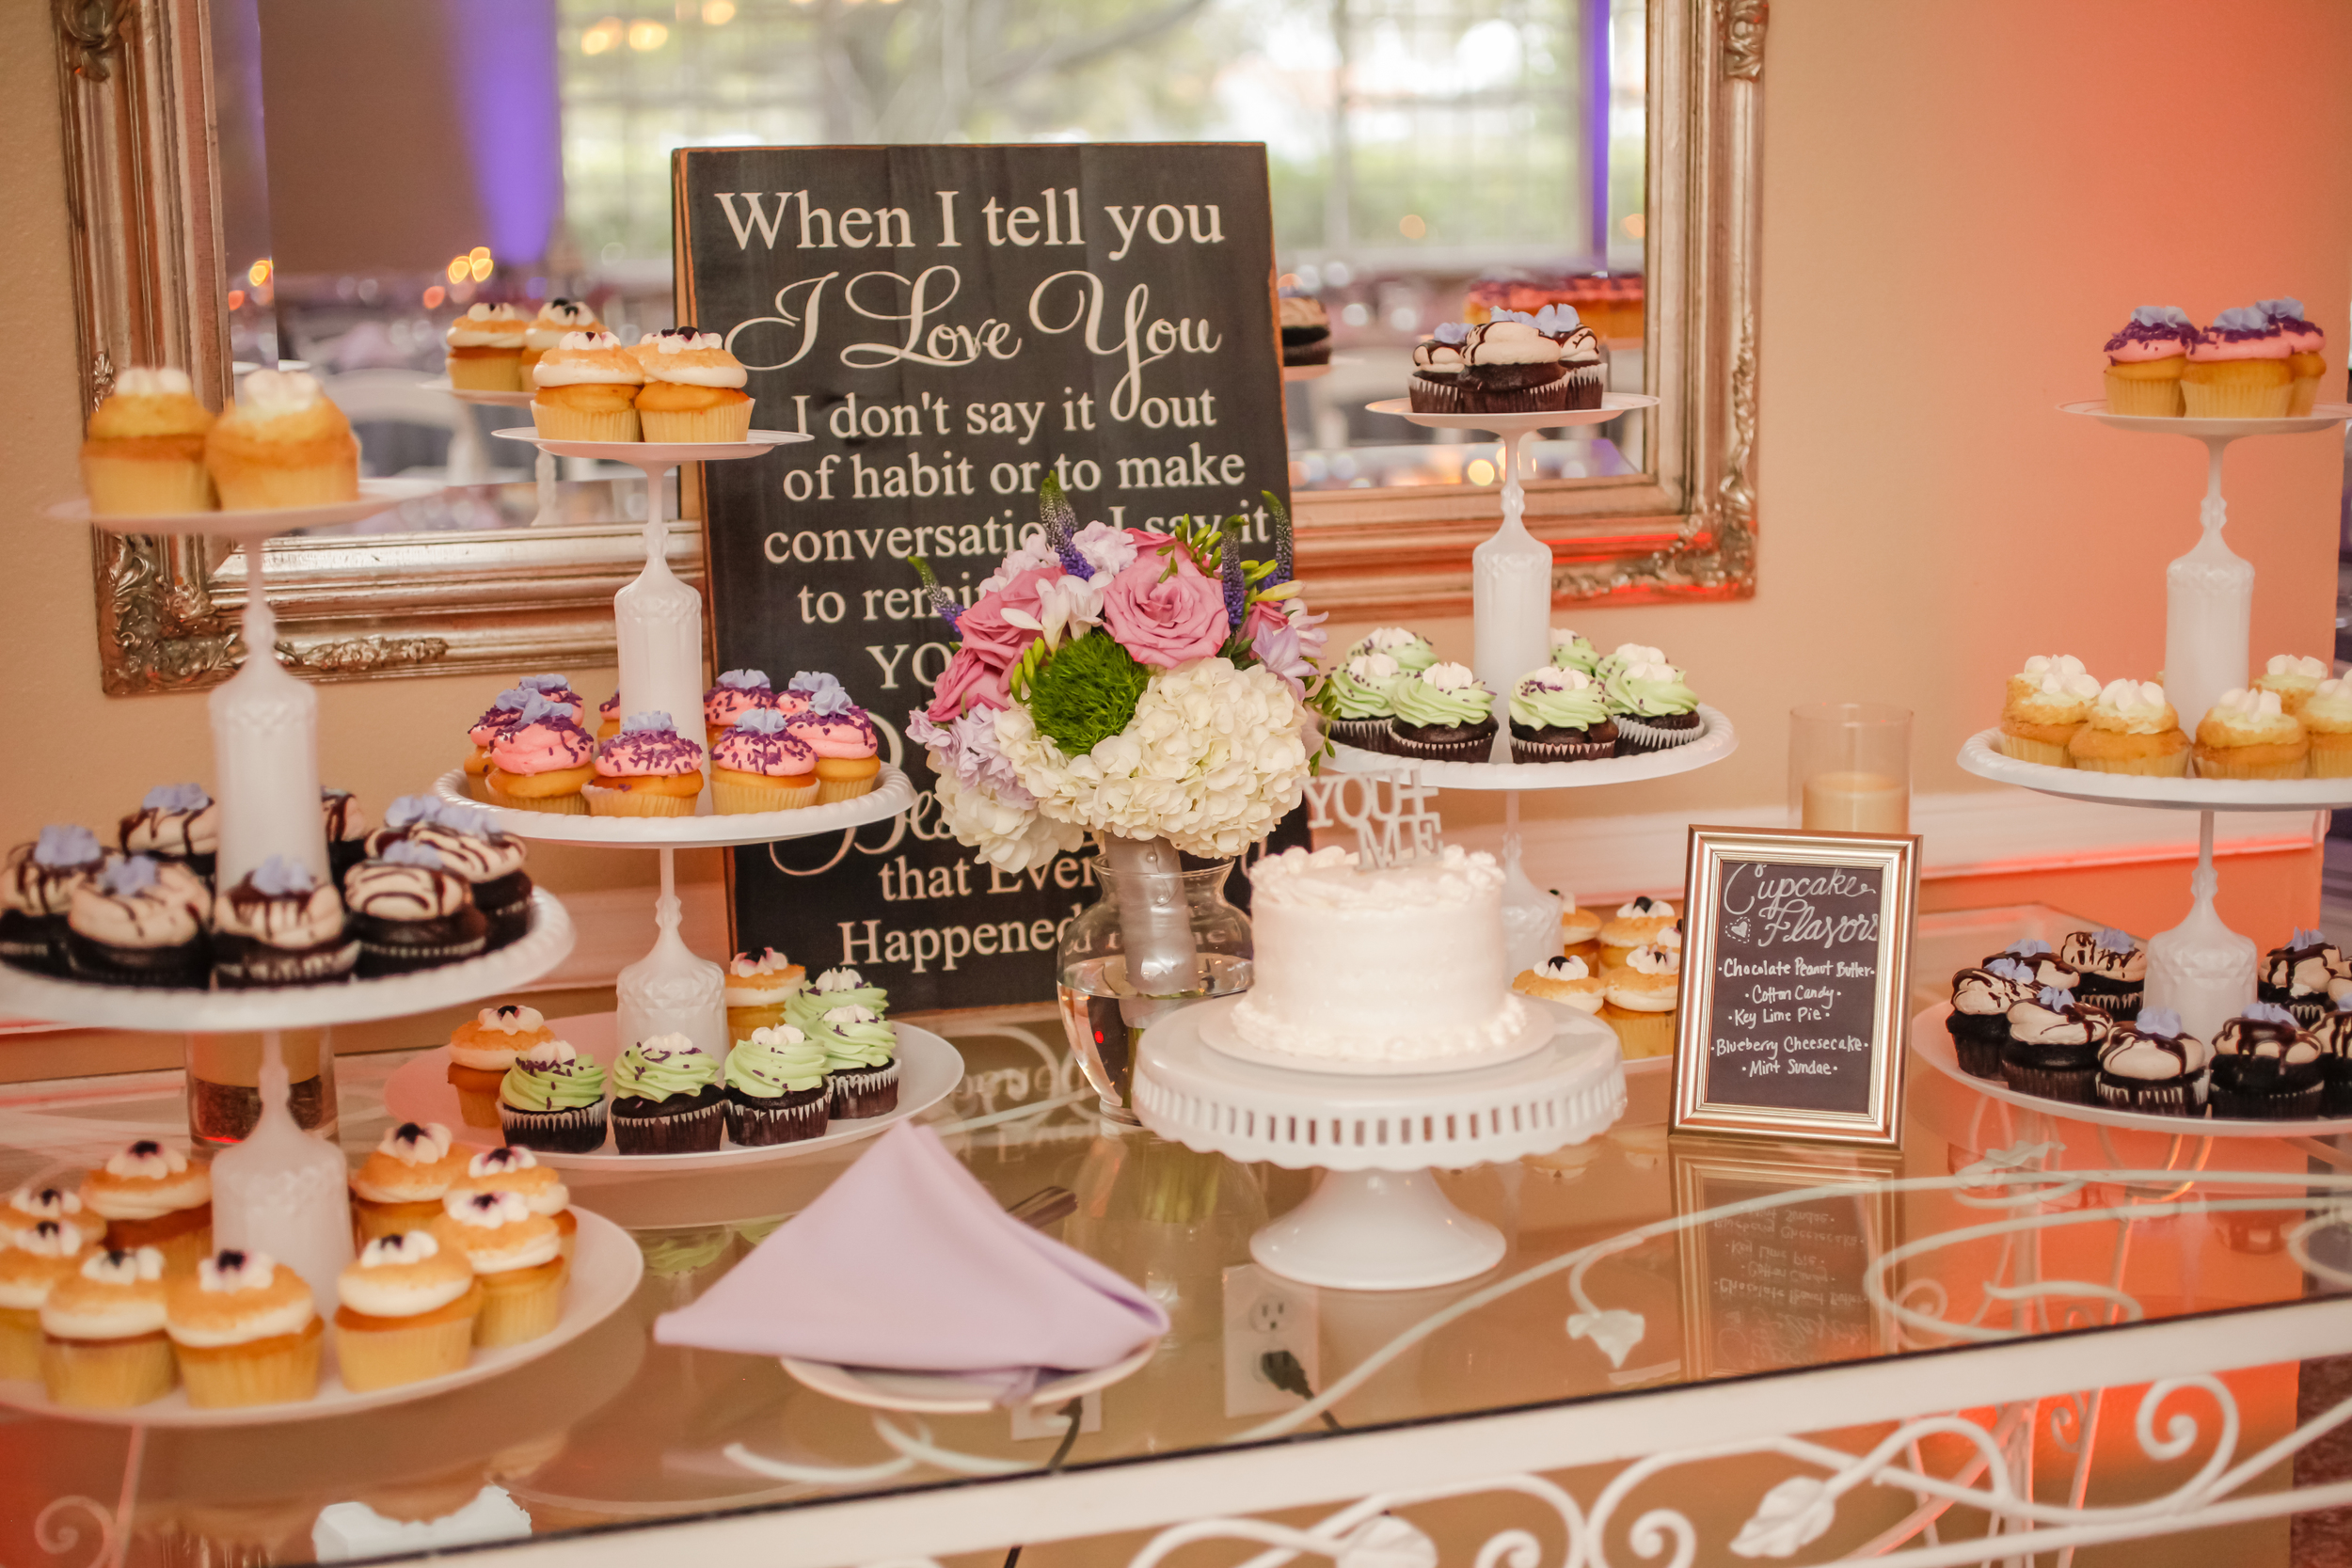 The couple ceremoniously cut a small cake and served assorted cupcakes for dessert.